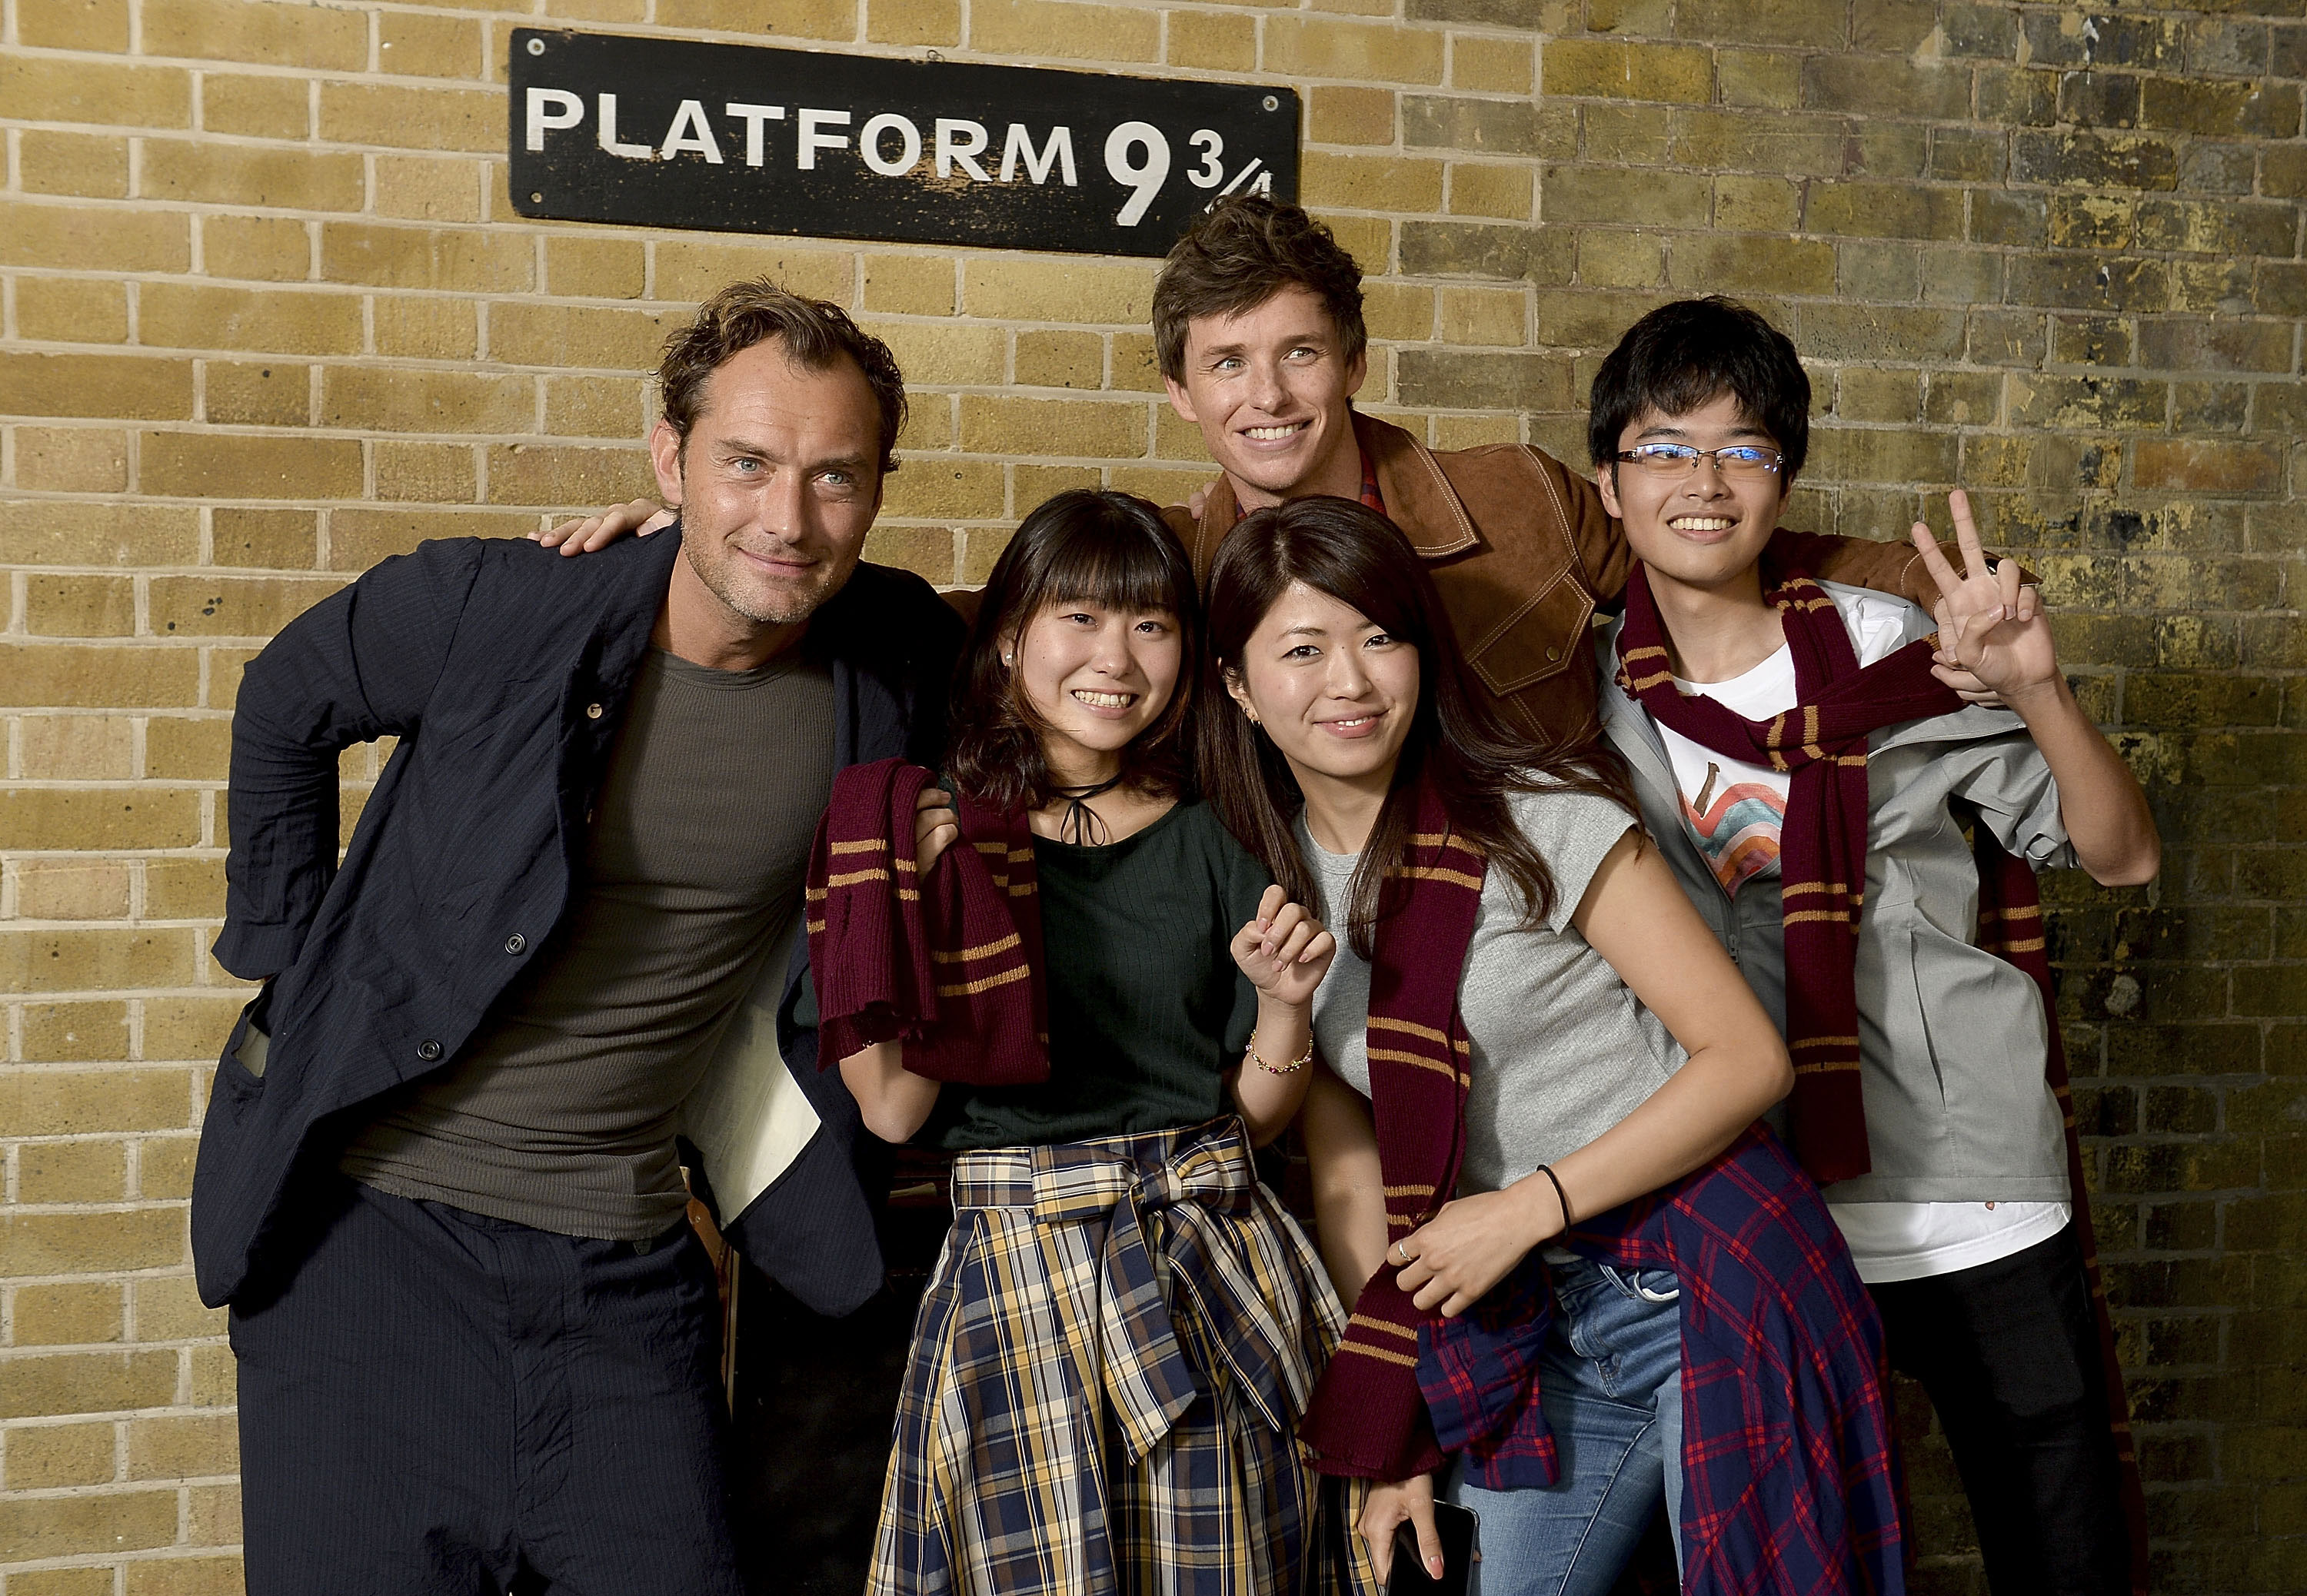 Law and Redmayne pose with the same group of Gryffindors for an official photo.